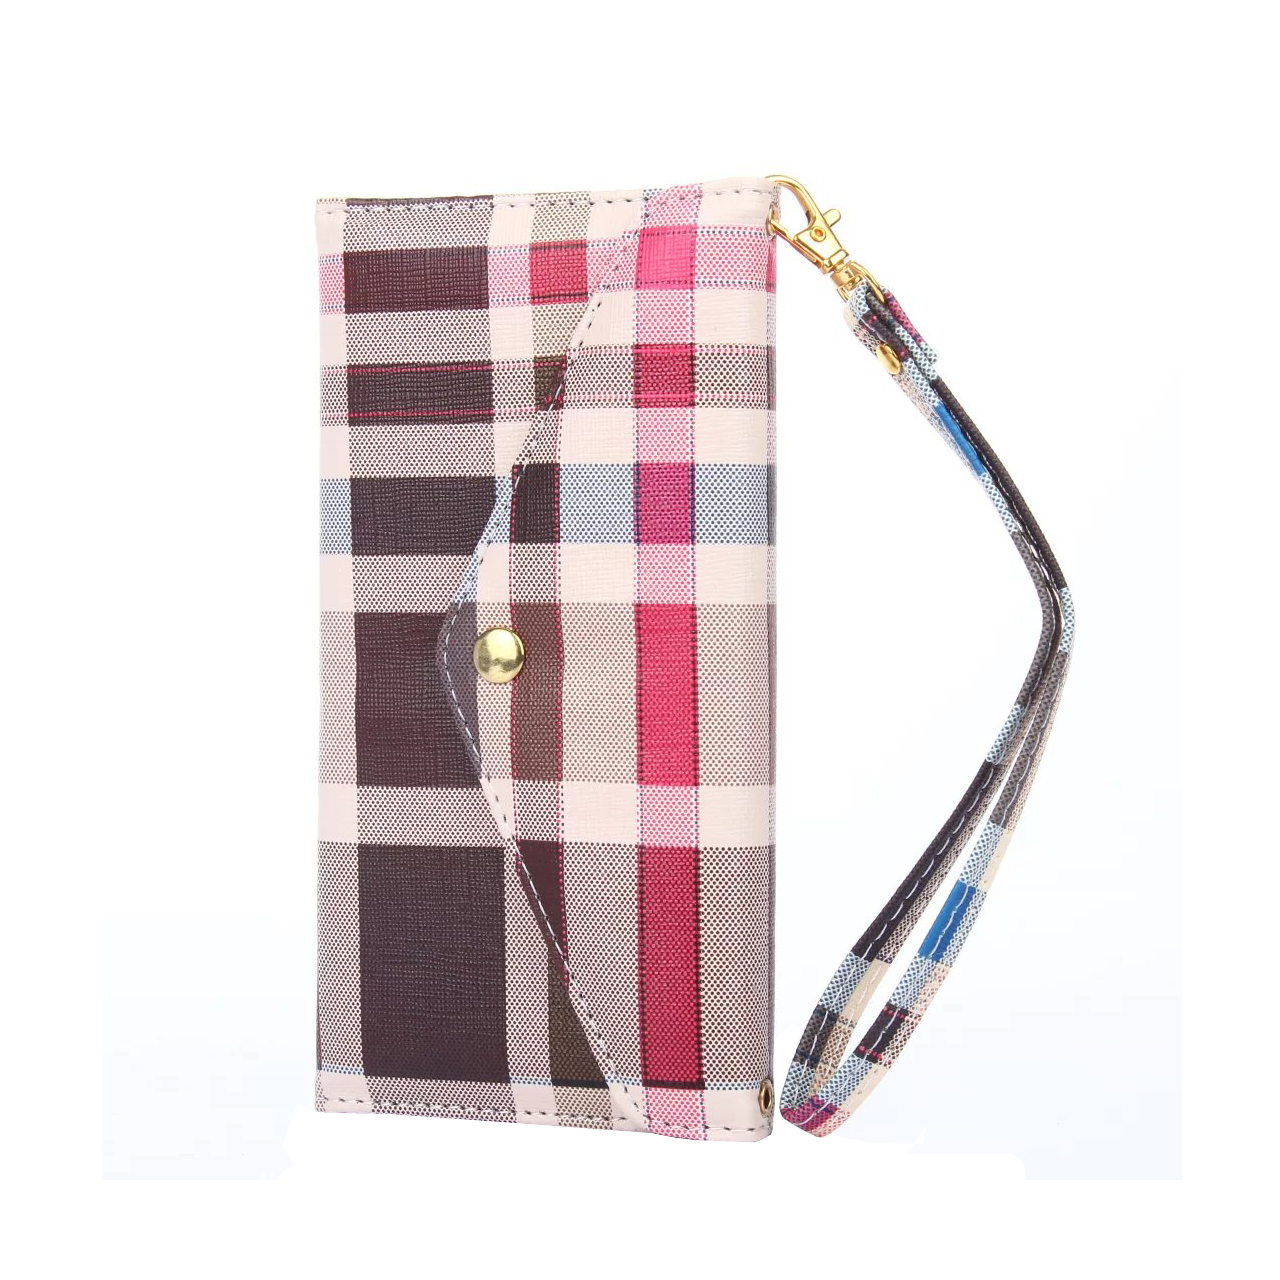 iphone 8 Plus cases and accessories best case for iphone 8 Plus s Burberry iphone 8 Plus case phone caes 8 Plus case iphone iPhone 8 Plus designer wallet case ladies iPhone 8 Plus cases icase iphone iphone 8 Plus cases for women